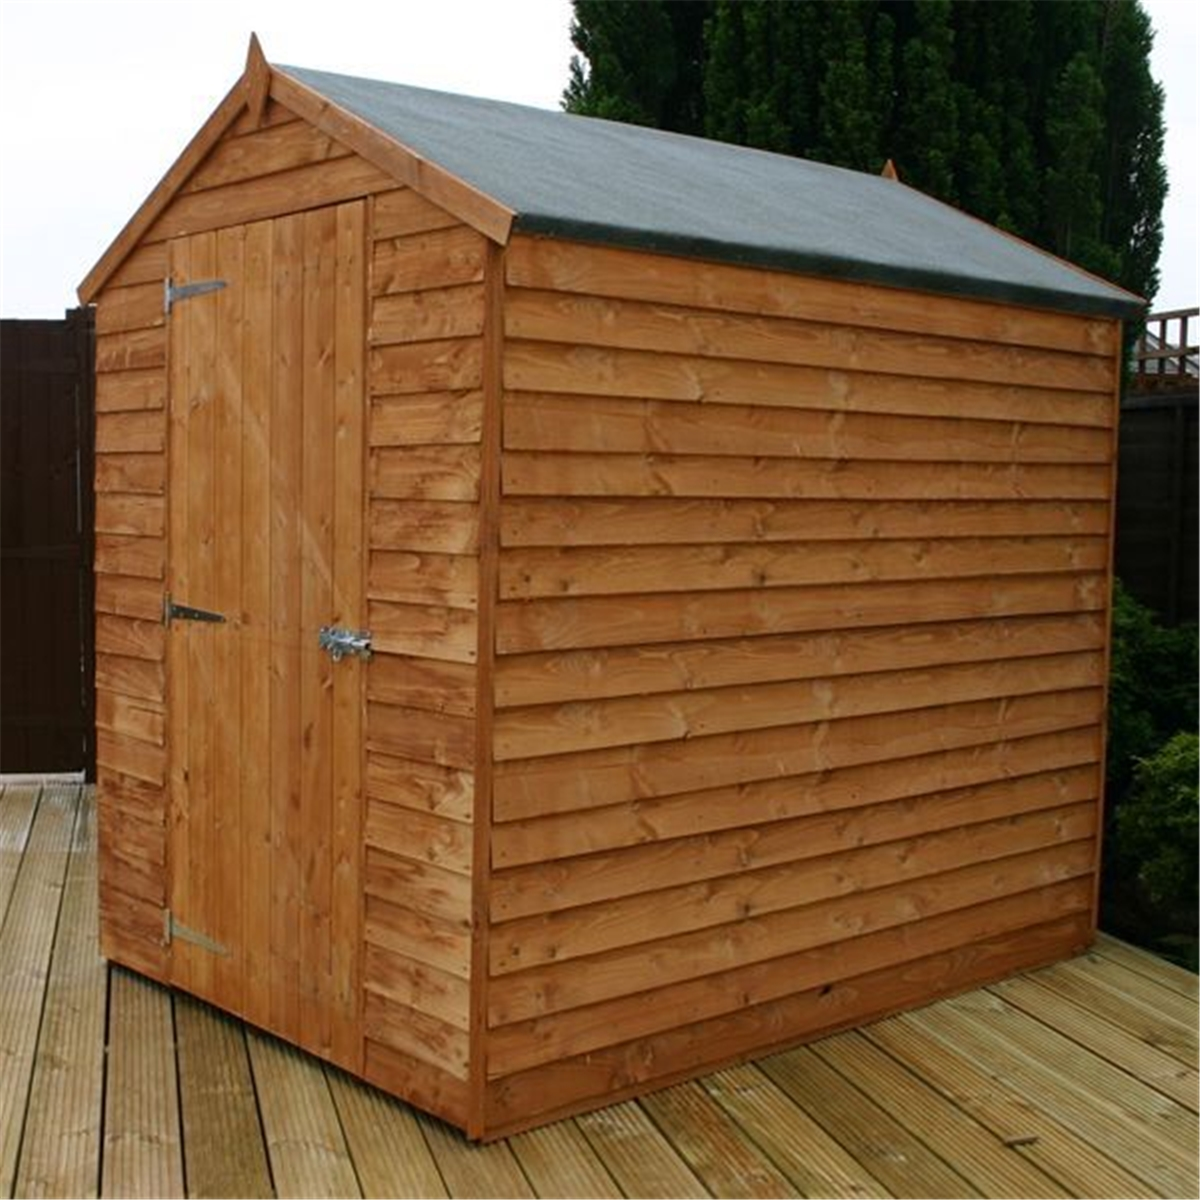 7 X 5 Windowless Overlap Apex Shed With Single Door (10mm